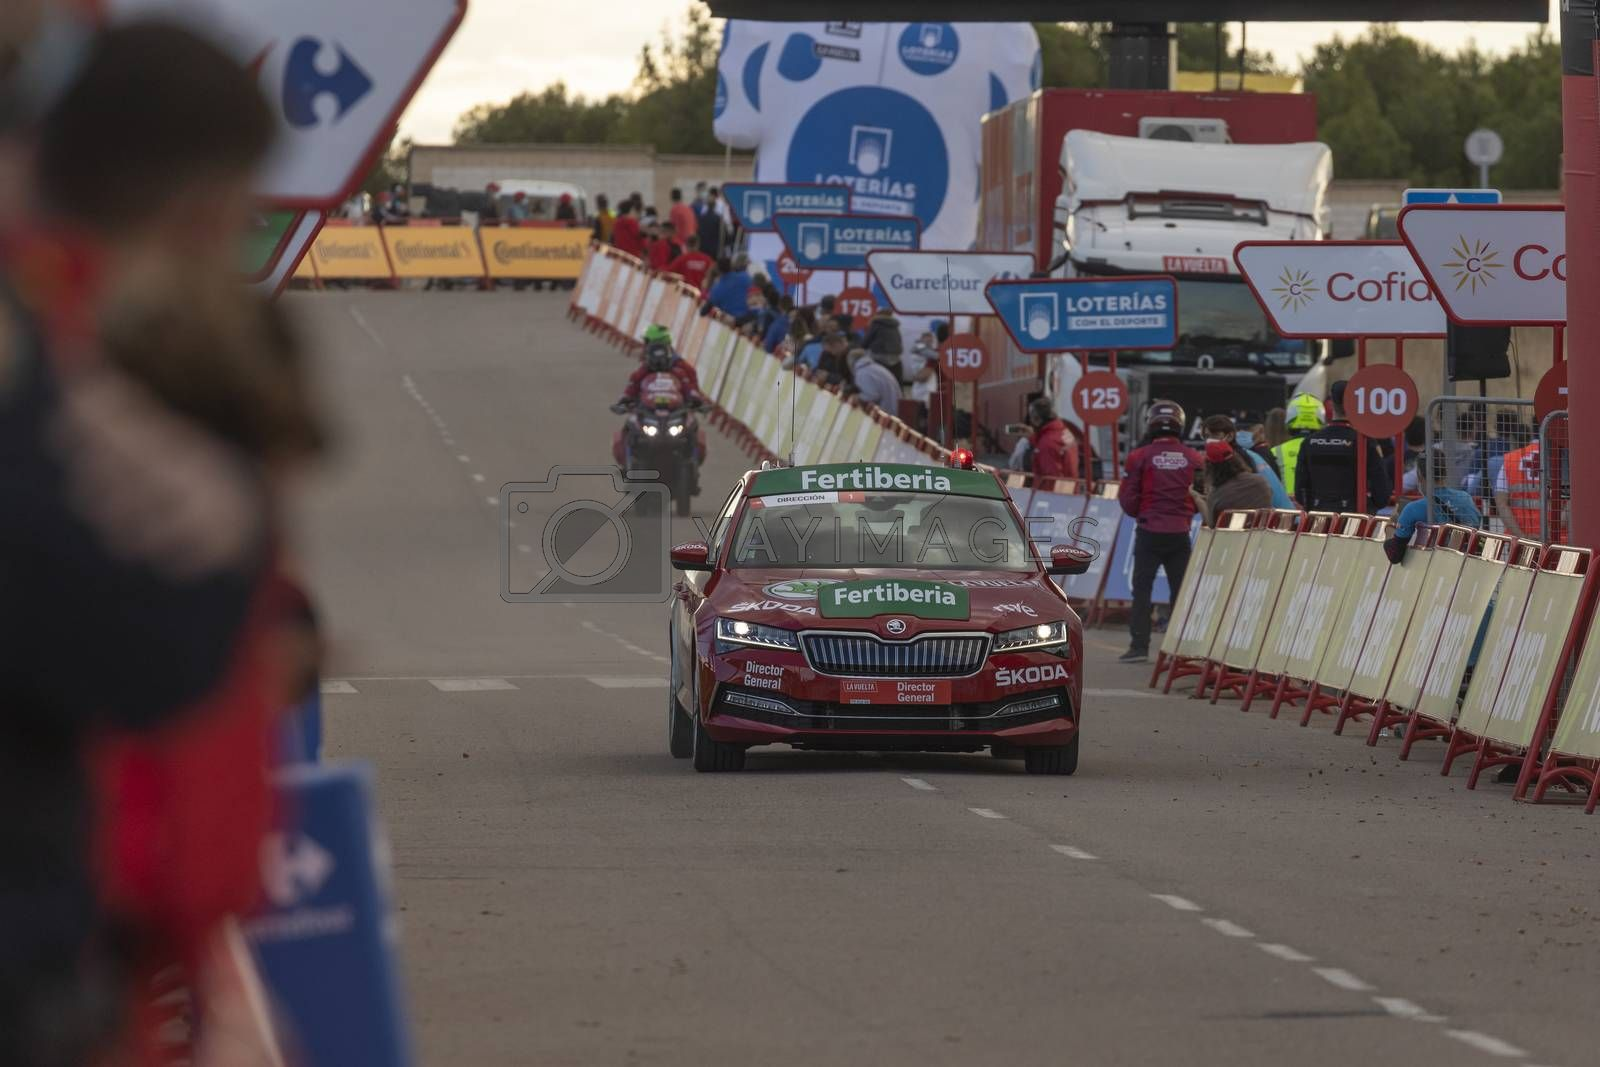 Arrival safety car of the cyclists peloton, in the area of the finish line of the fourth stage of La Vuelta a España 2020.